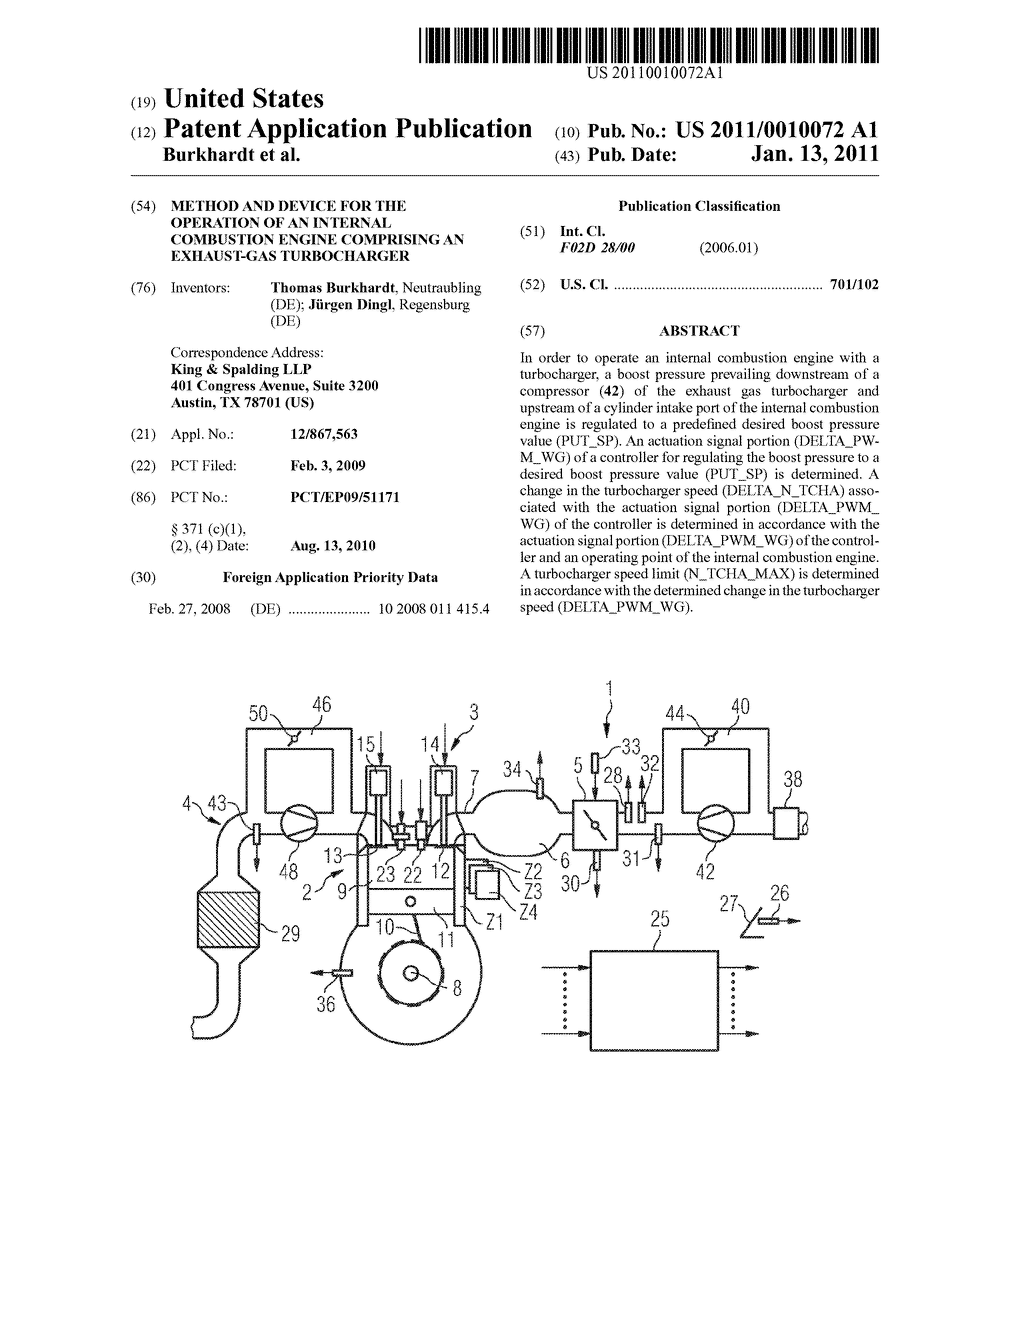 METHOD AND DEVICE FOR THE OPERATION OF AN INTERNAL COMBUSTION ENGINE COMPRISING AN EXHAUST-GAS TURBOCHARGER - diagram, schematic, and image 01